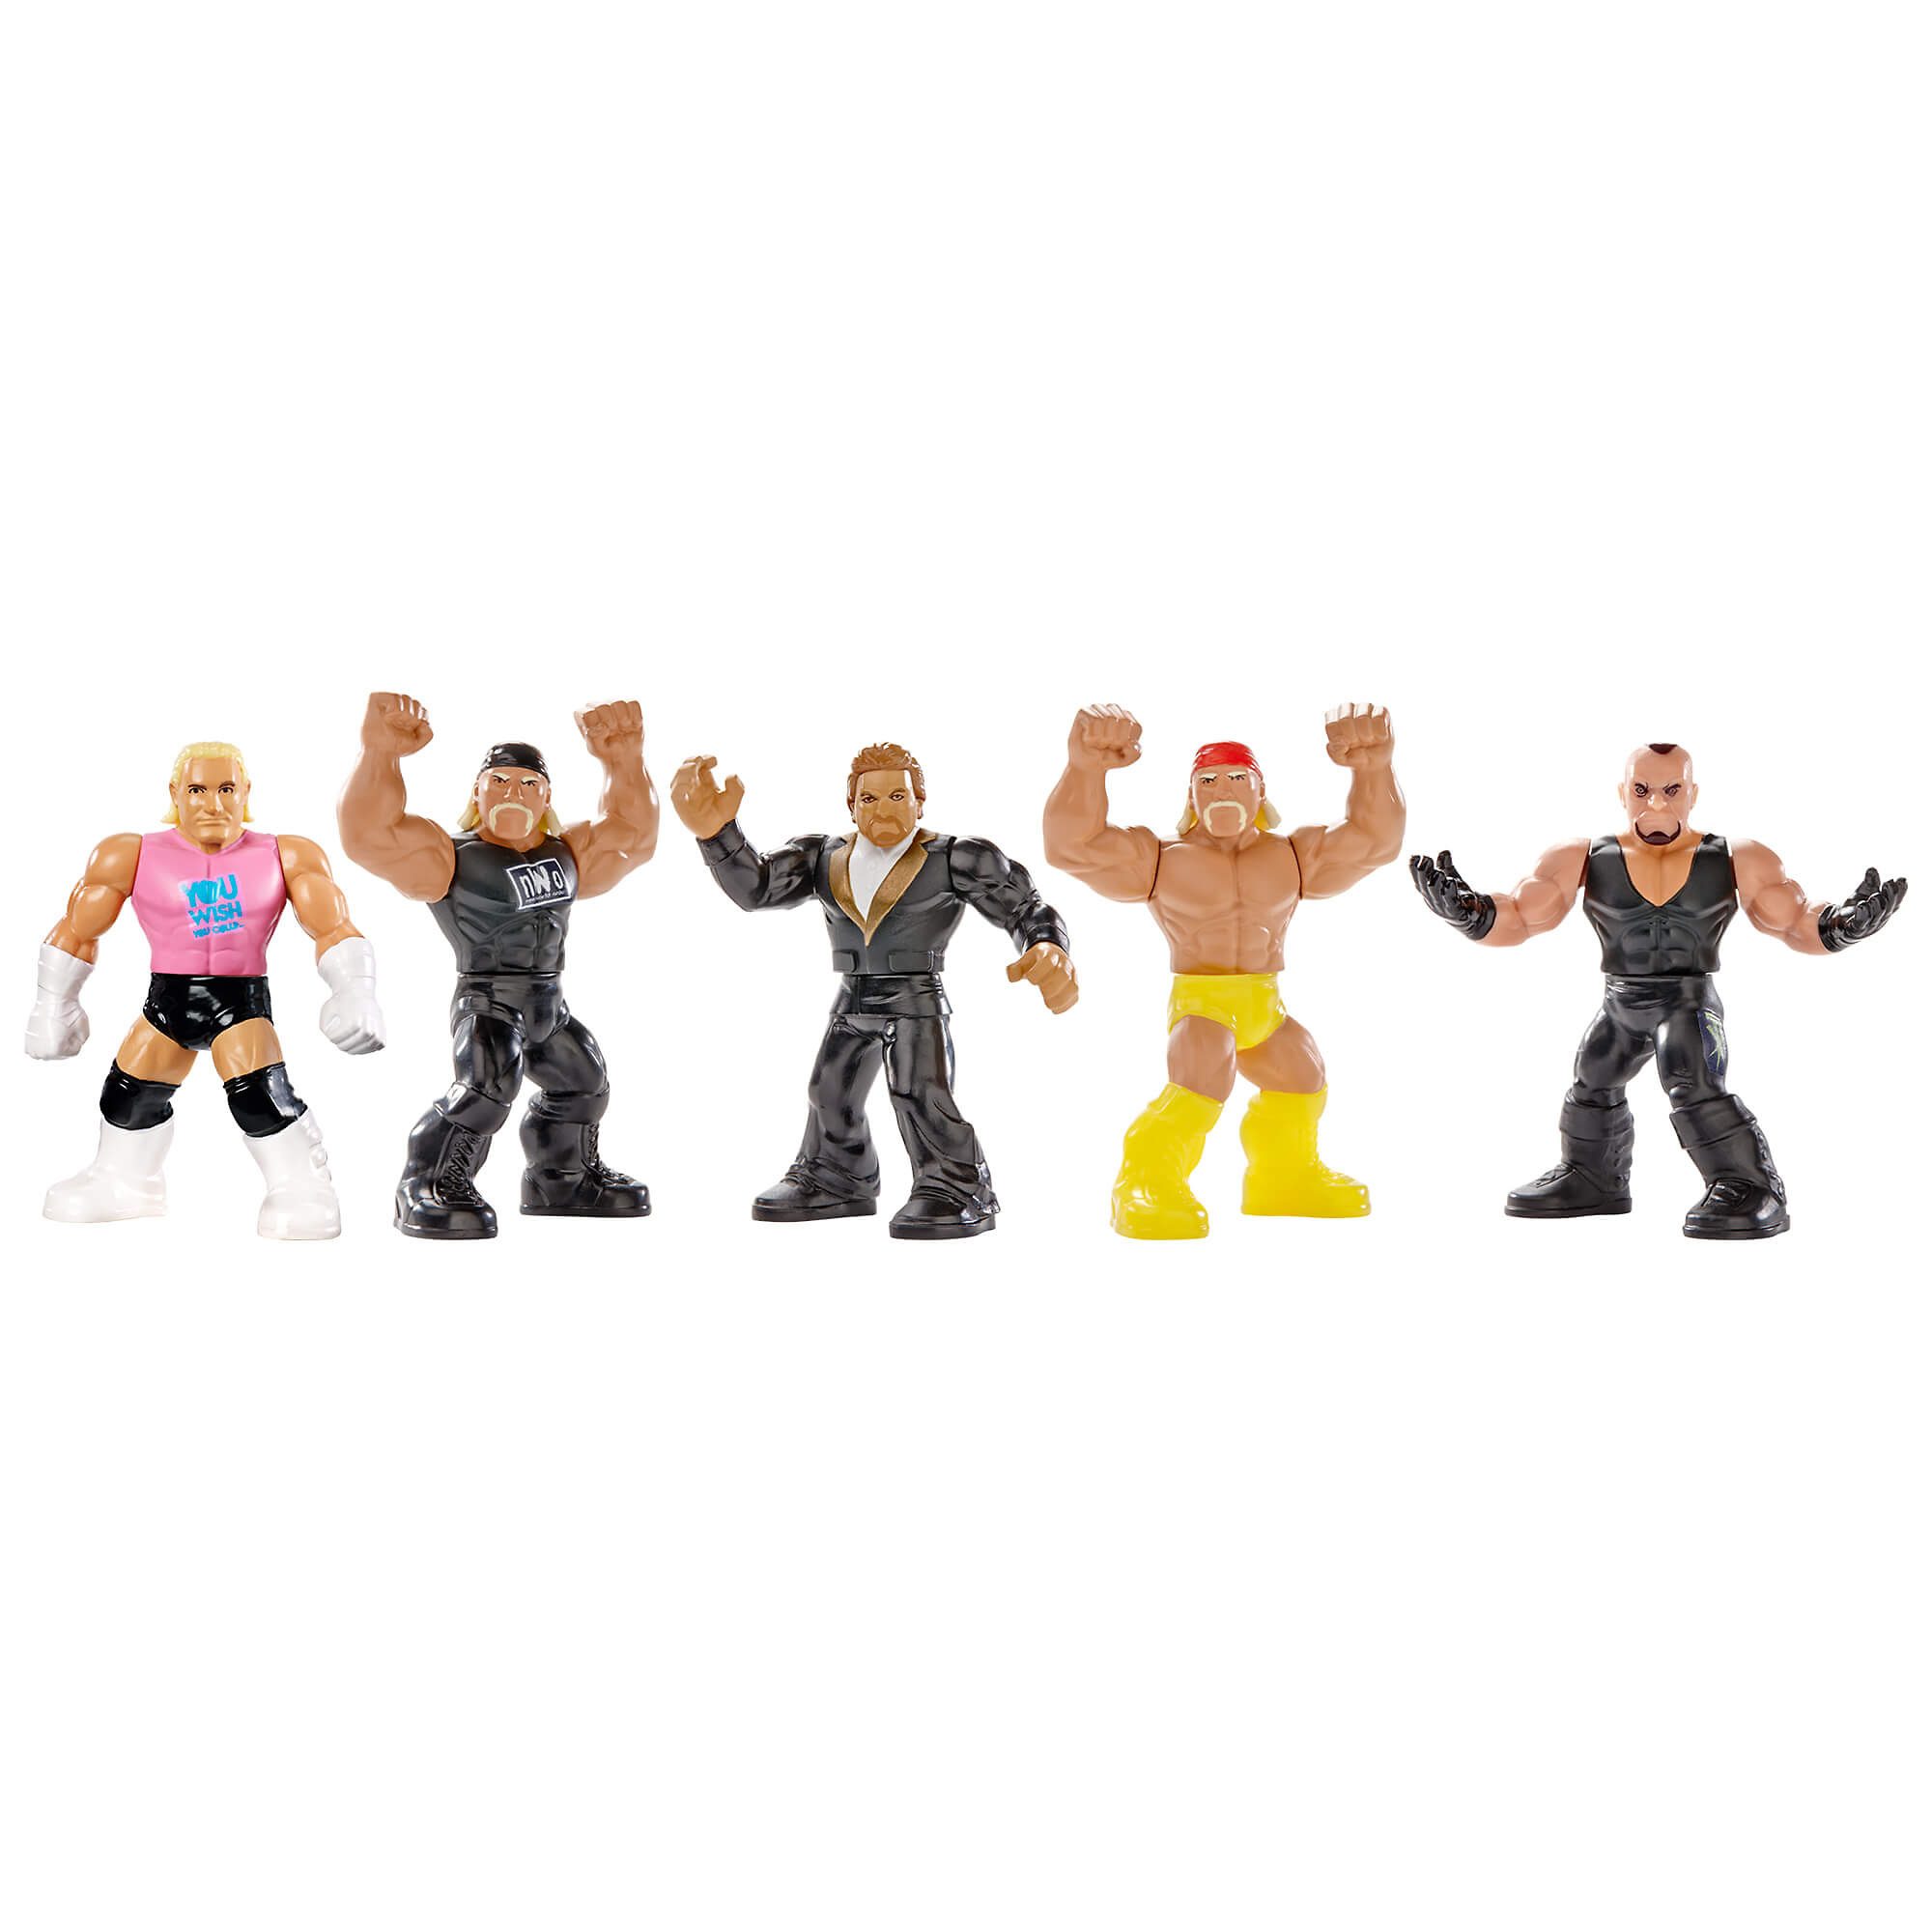 WWE Mighty Minis (Styles May Vary) by Mattel